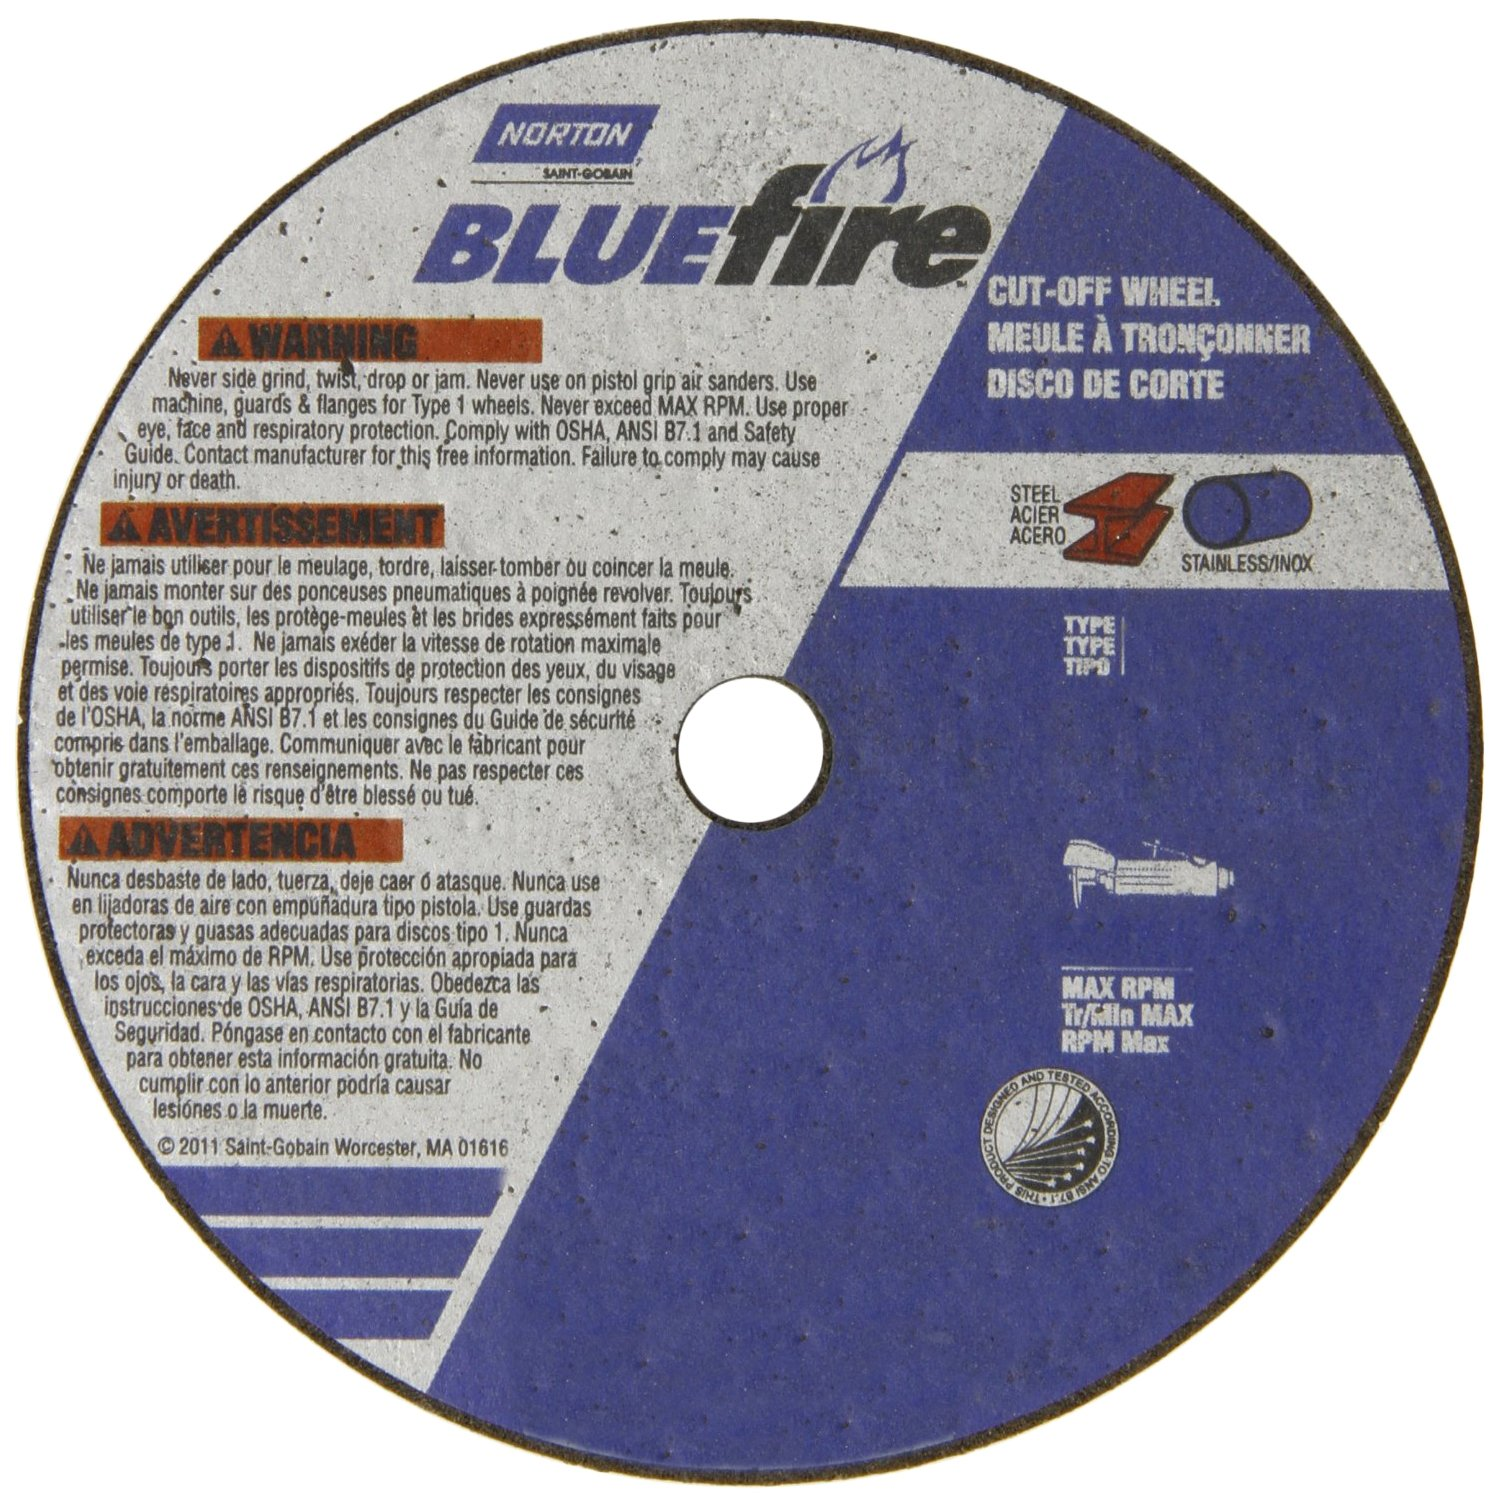 Norton Blue Fire Small Diameter Reinforced Abrasive Flat Cut-off Wheel, Type 01, Zirconia Alumina and Aluminum Oxide, 3/8'' Arbor, 3'' Diameter x 0.35'' Thickness (Pack of 25)